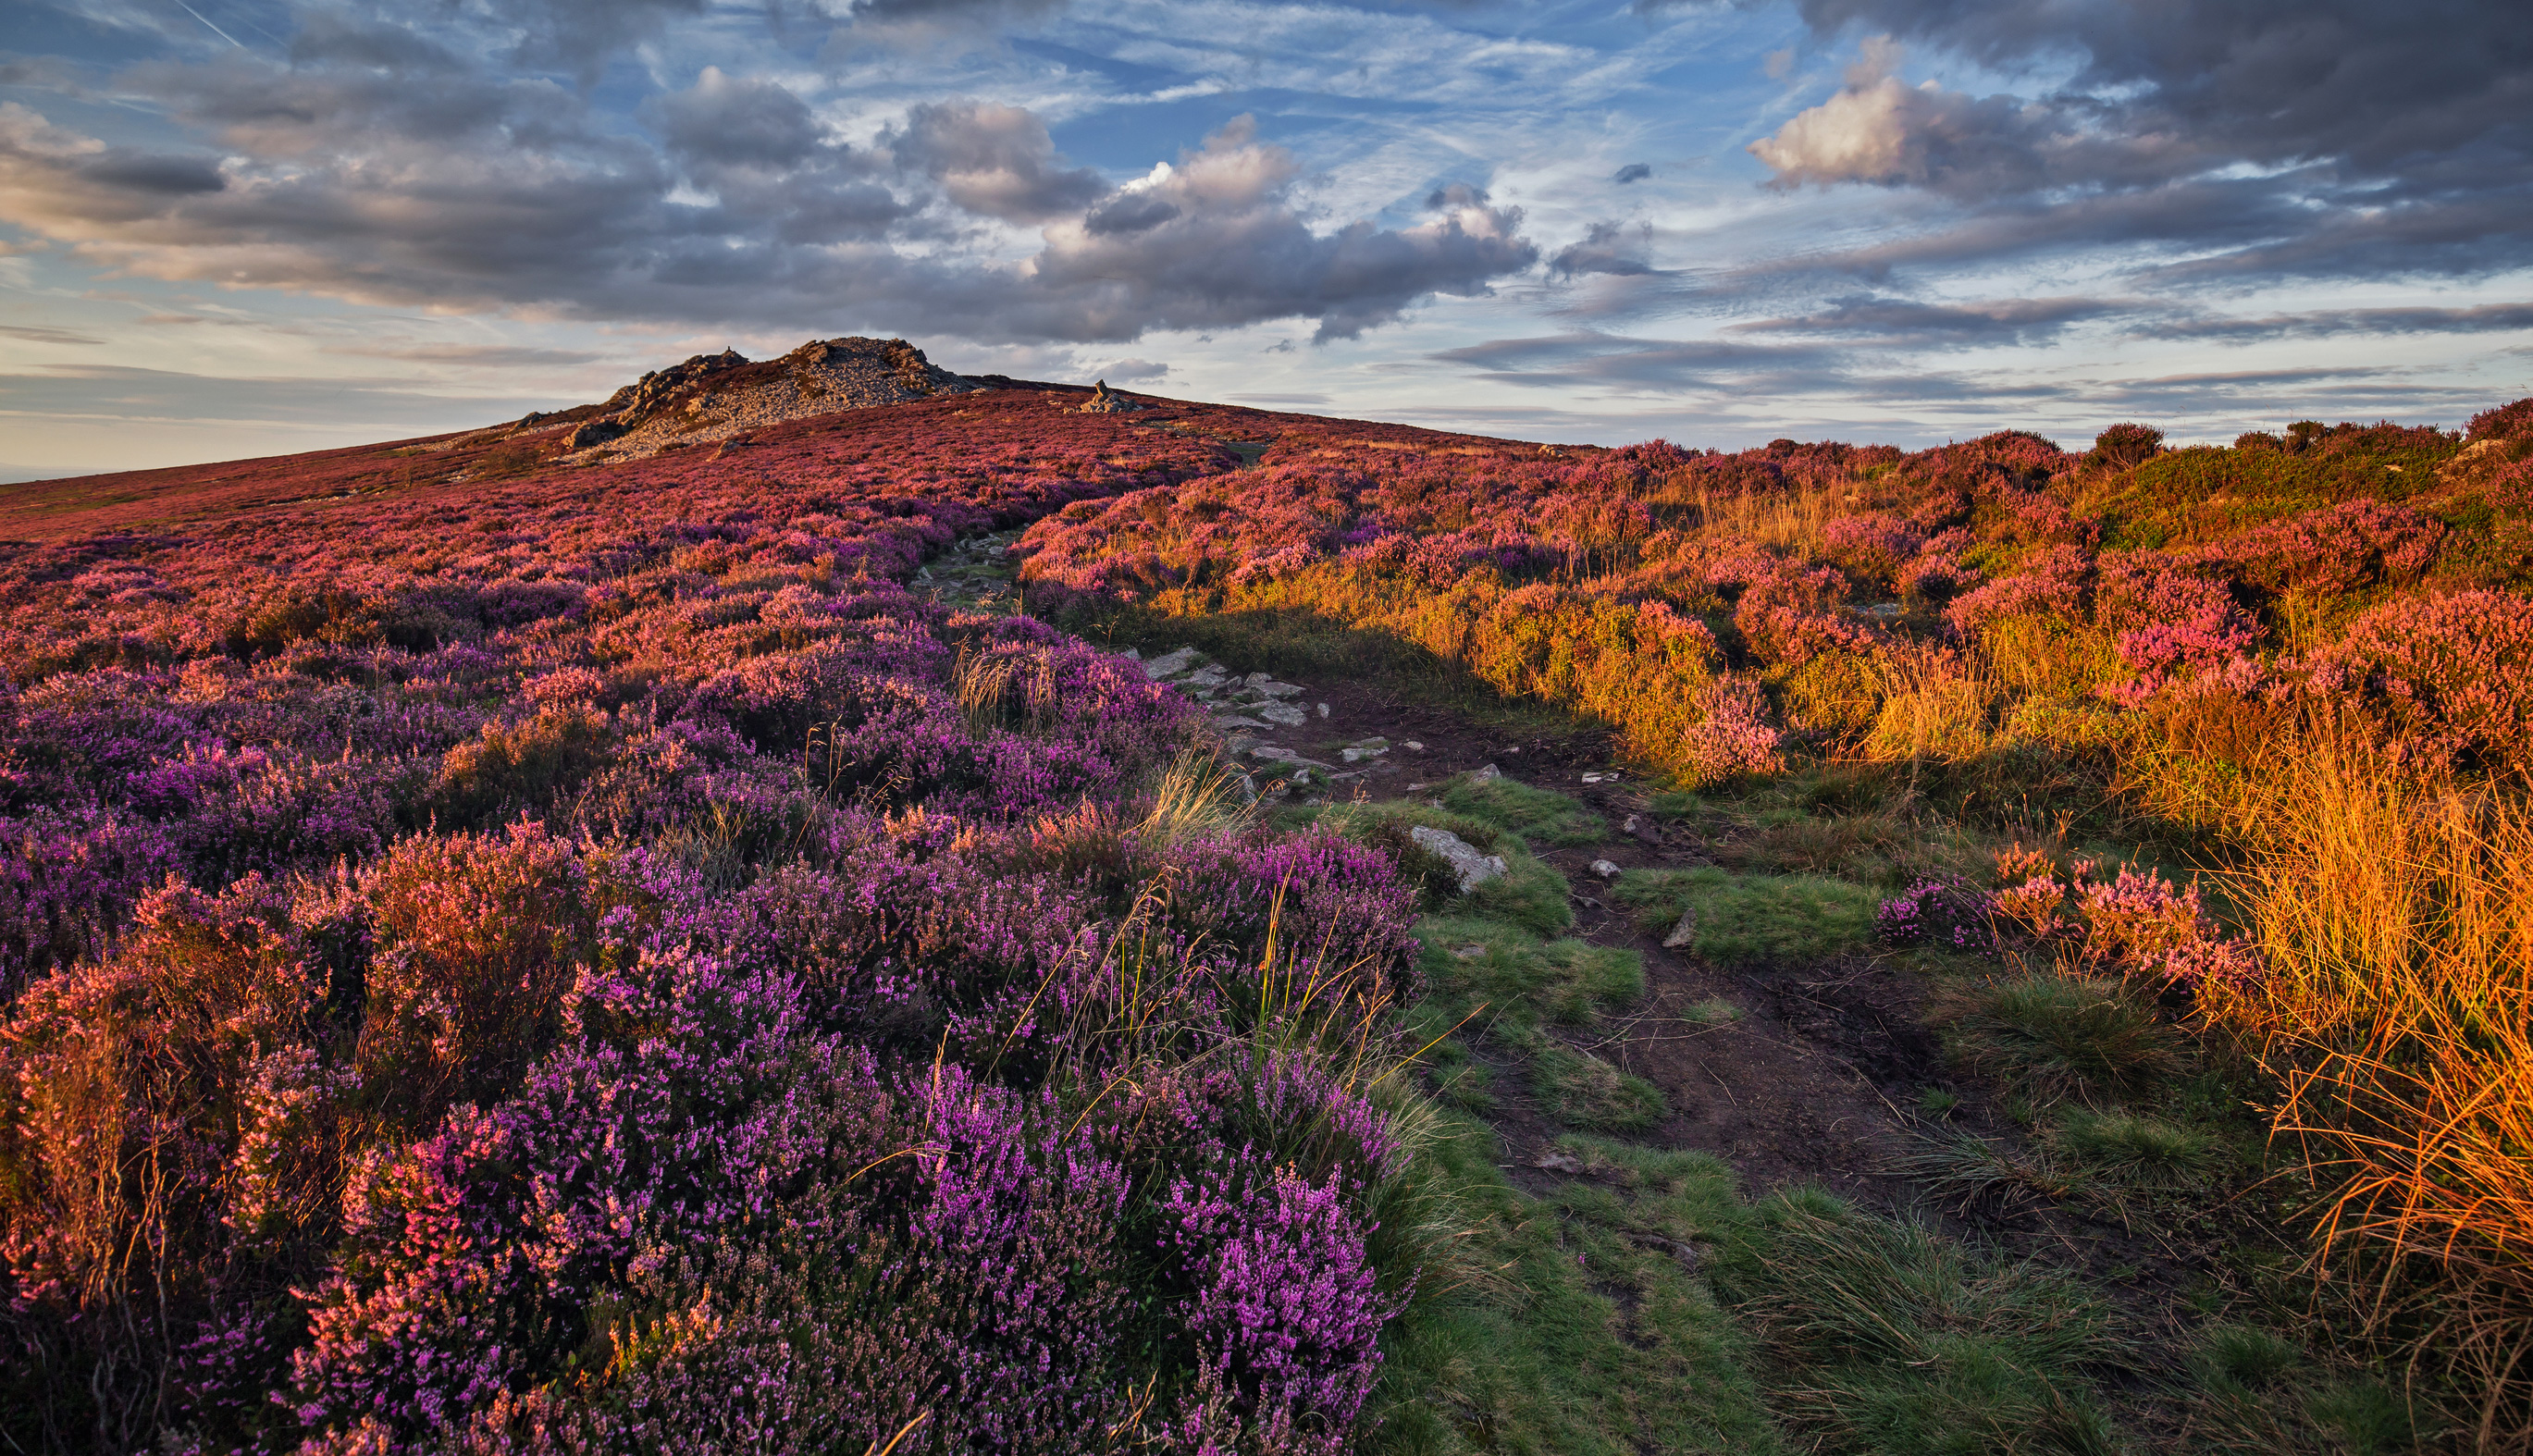 The Stiperstones on the Shropshire Way